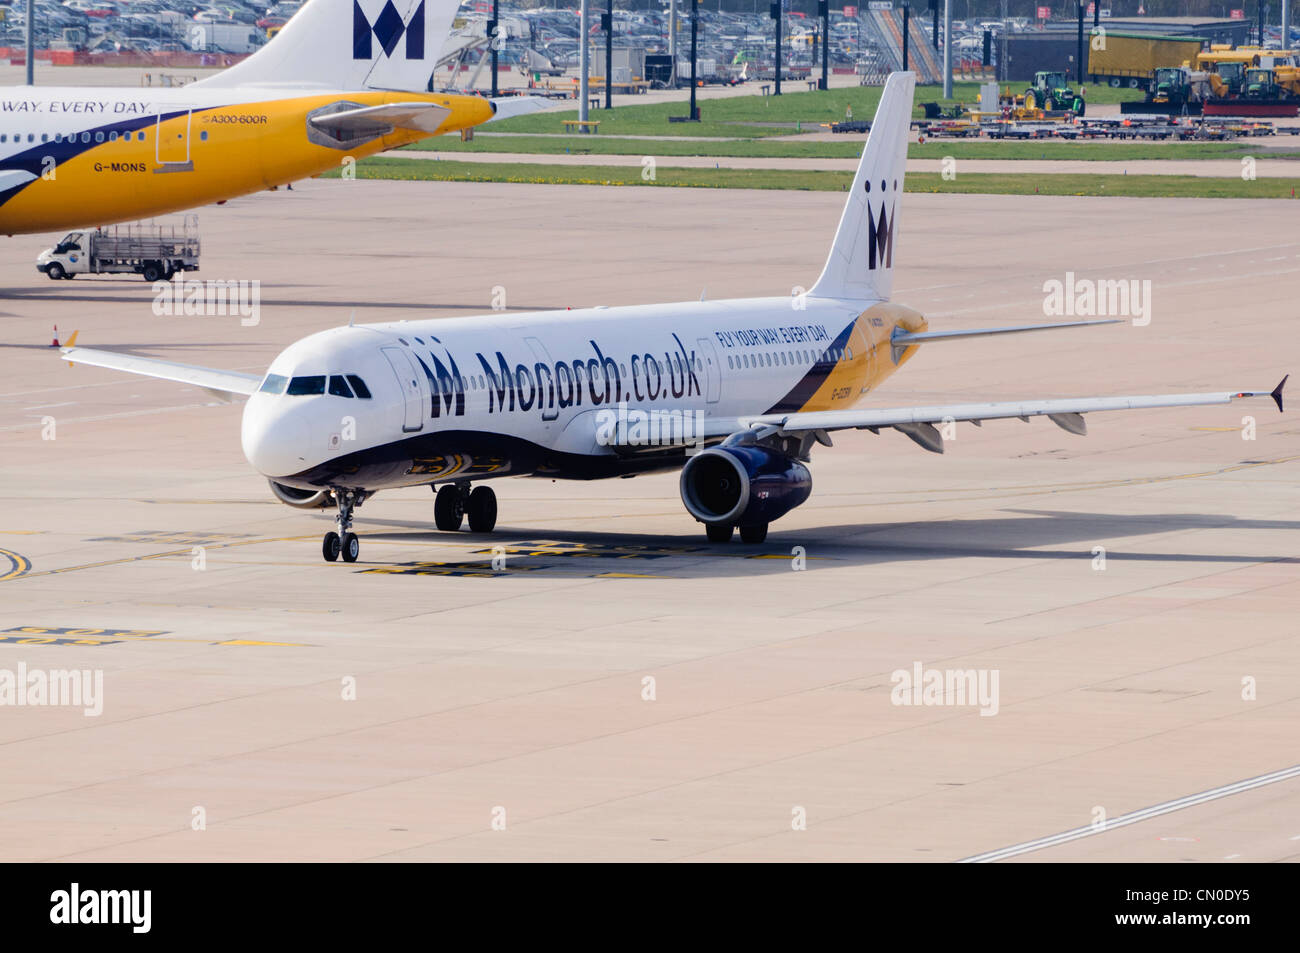 Monarch Airlines A321 taxiing on an airport apron. - Stock Image